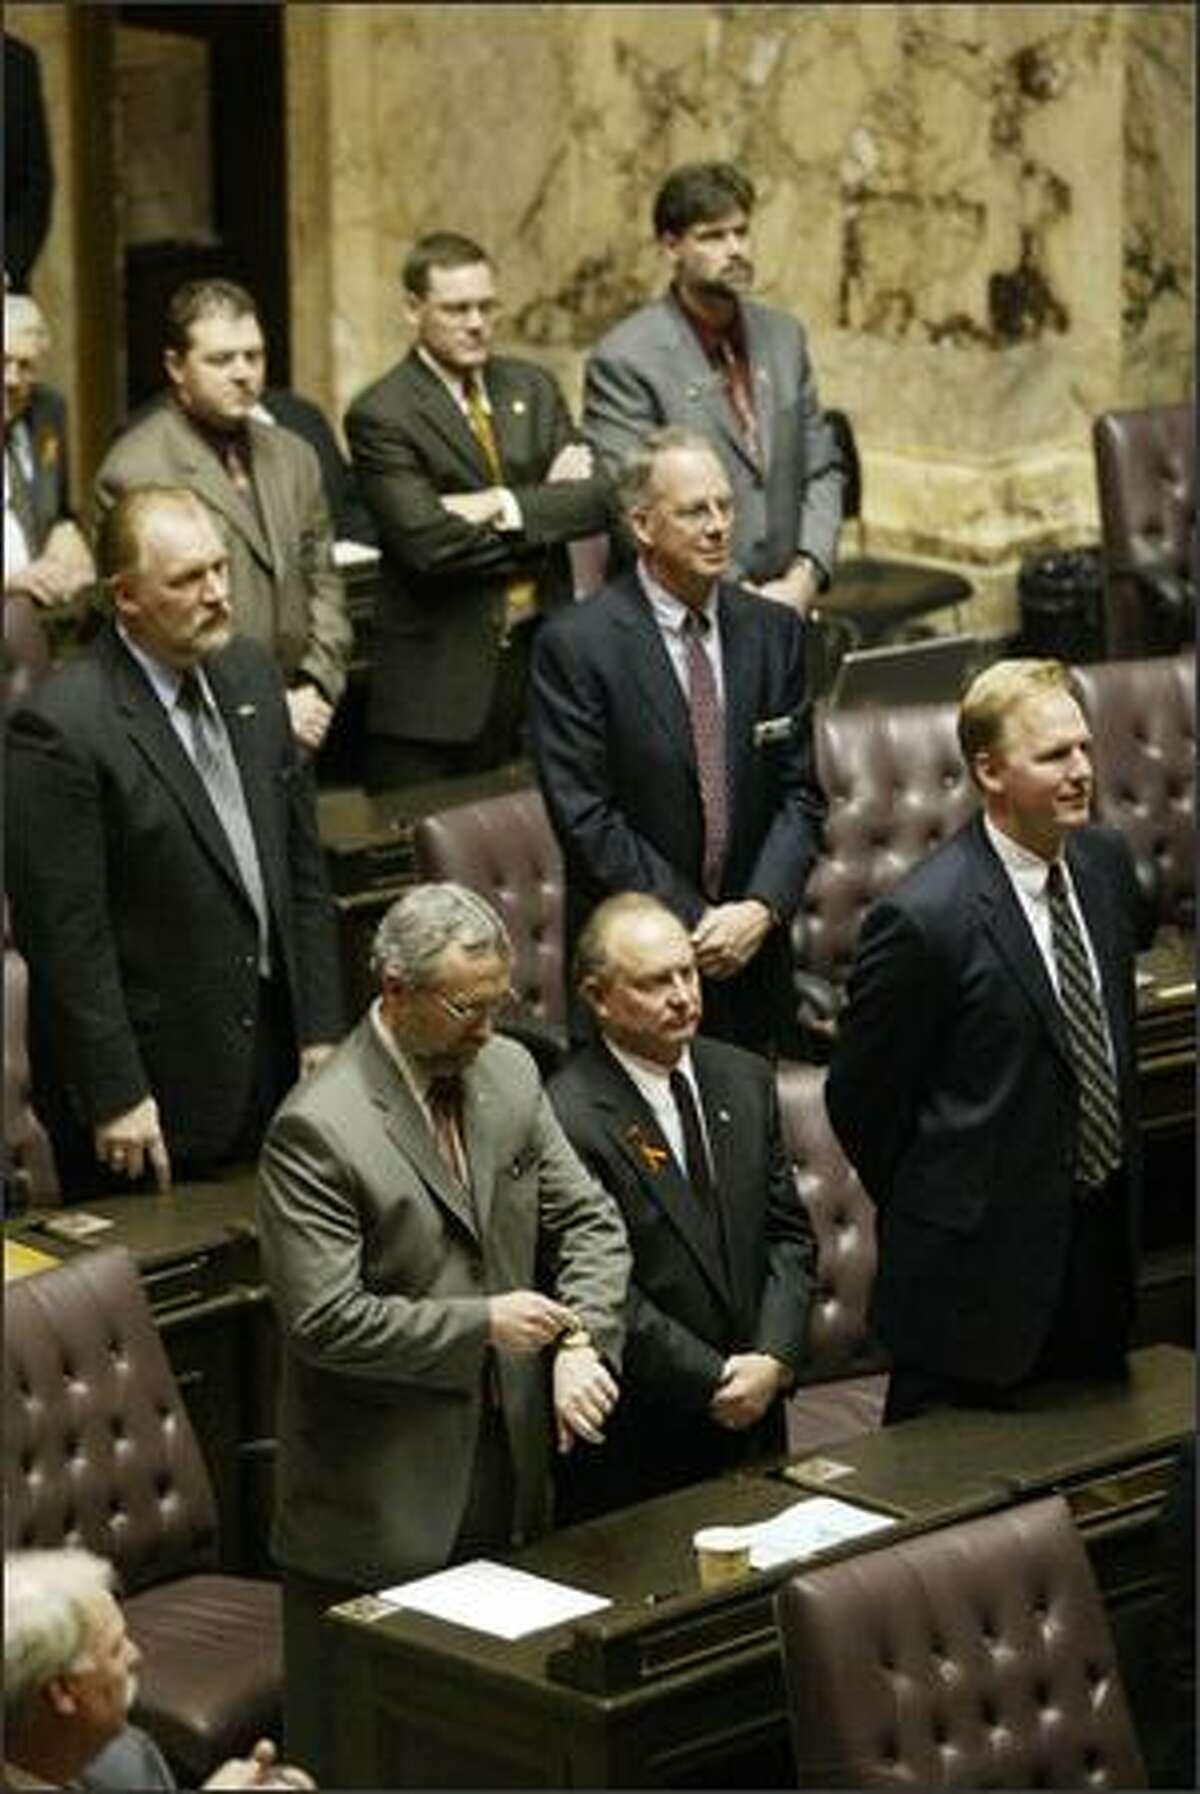 Republican members of the House and Senate, one looking at his watch, refused to applaud Christine Gregoire after she was sworn in as governor.